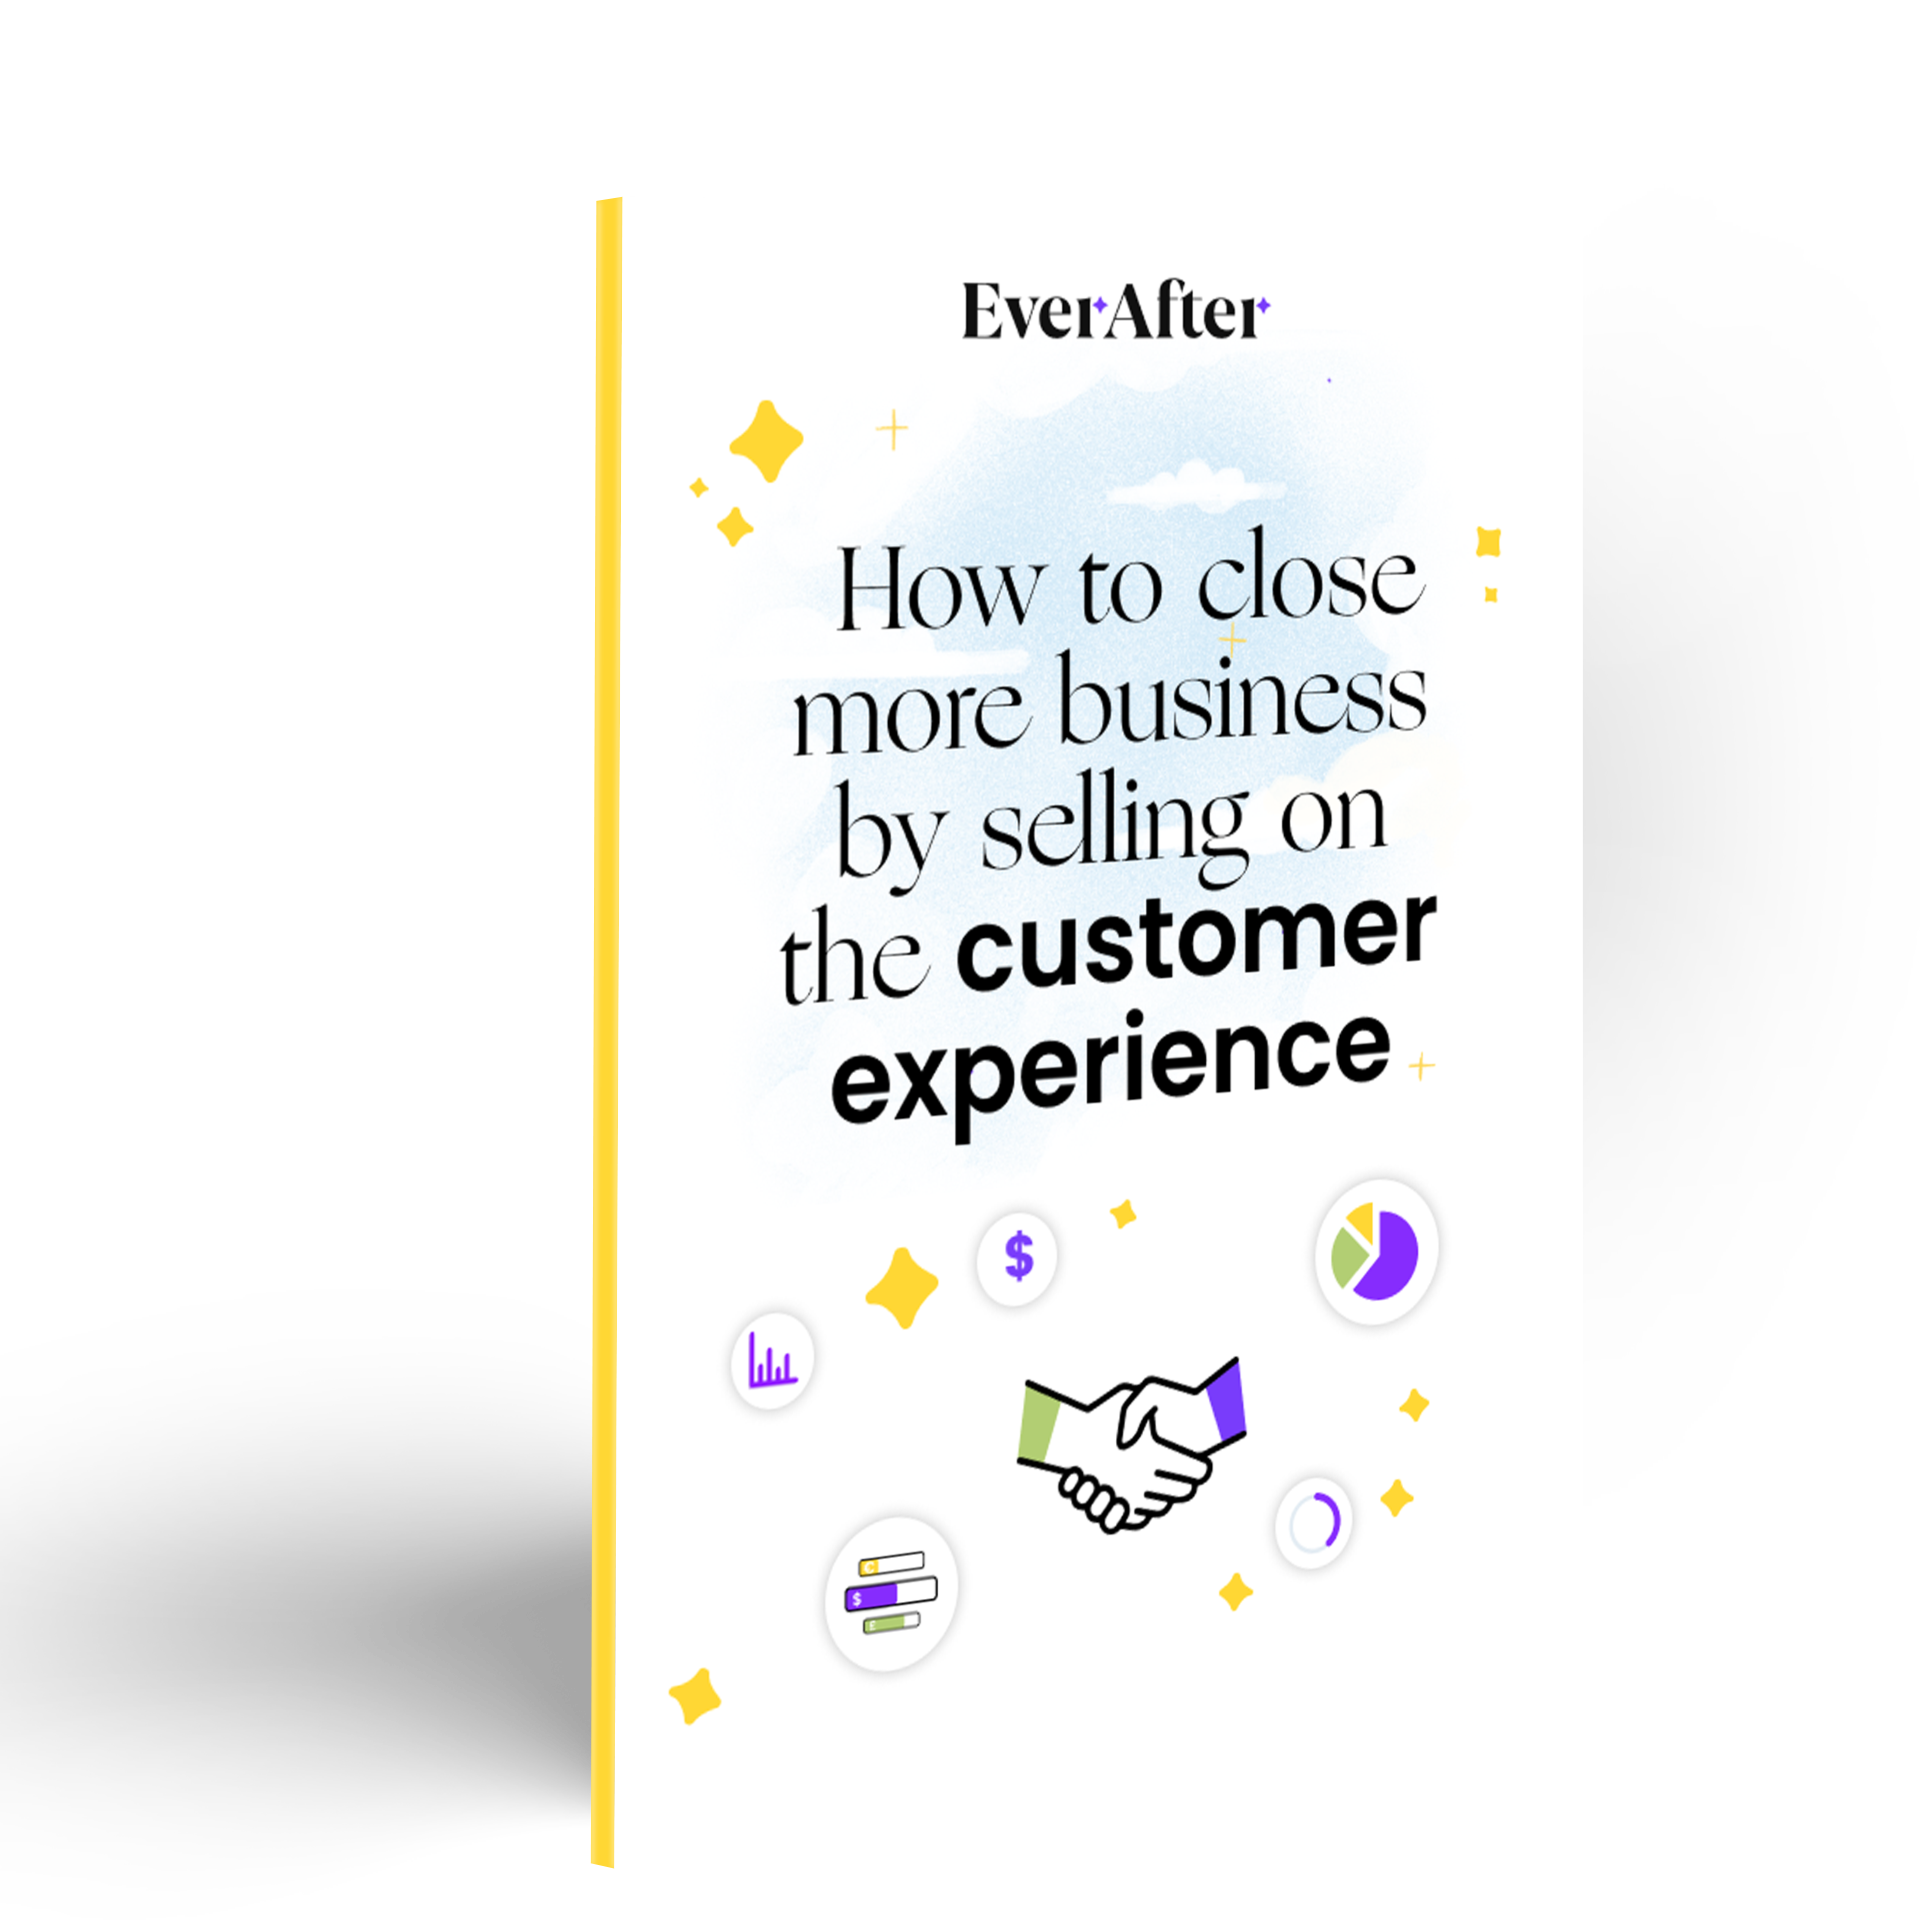 How to close more business by selling on the customer experience